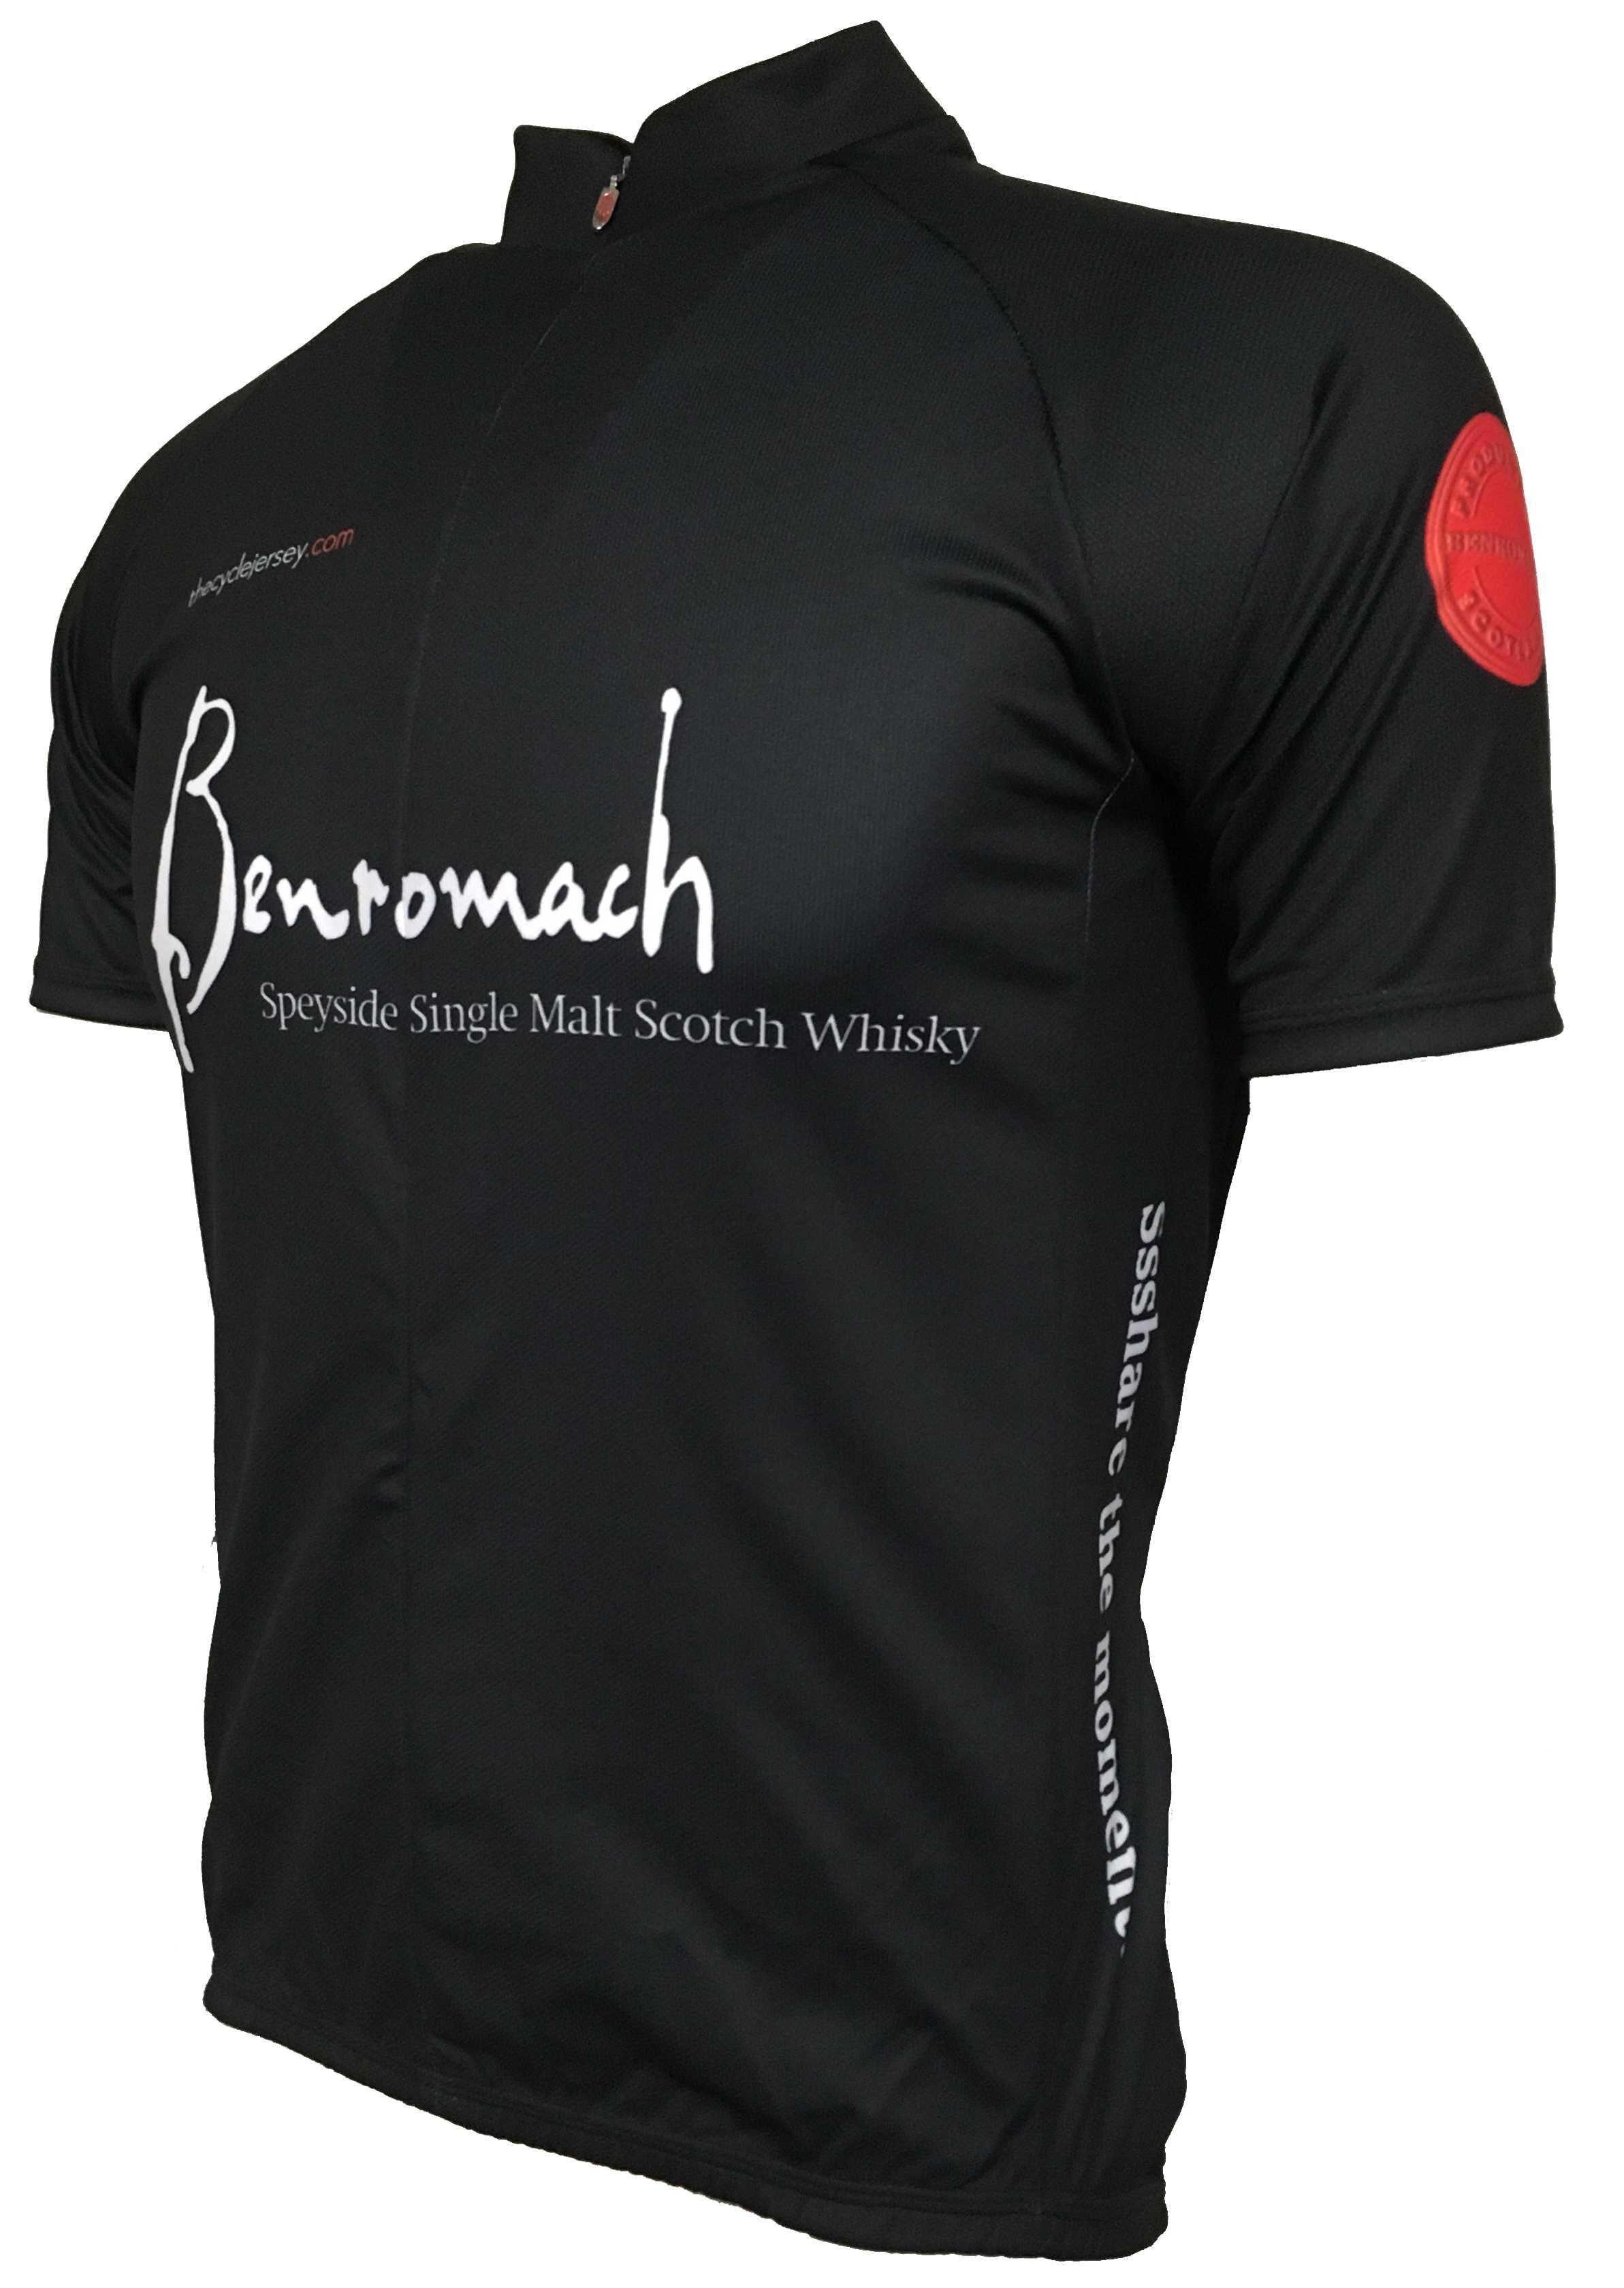 Benromach Single Malt Whisky Road Cycling Jersey Front